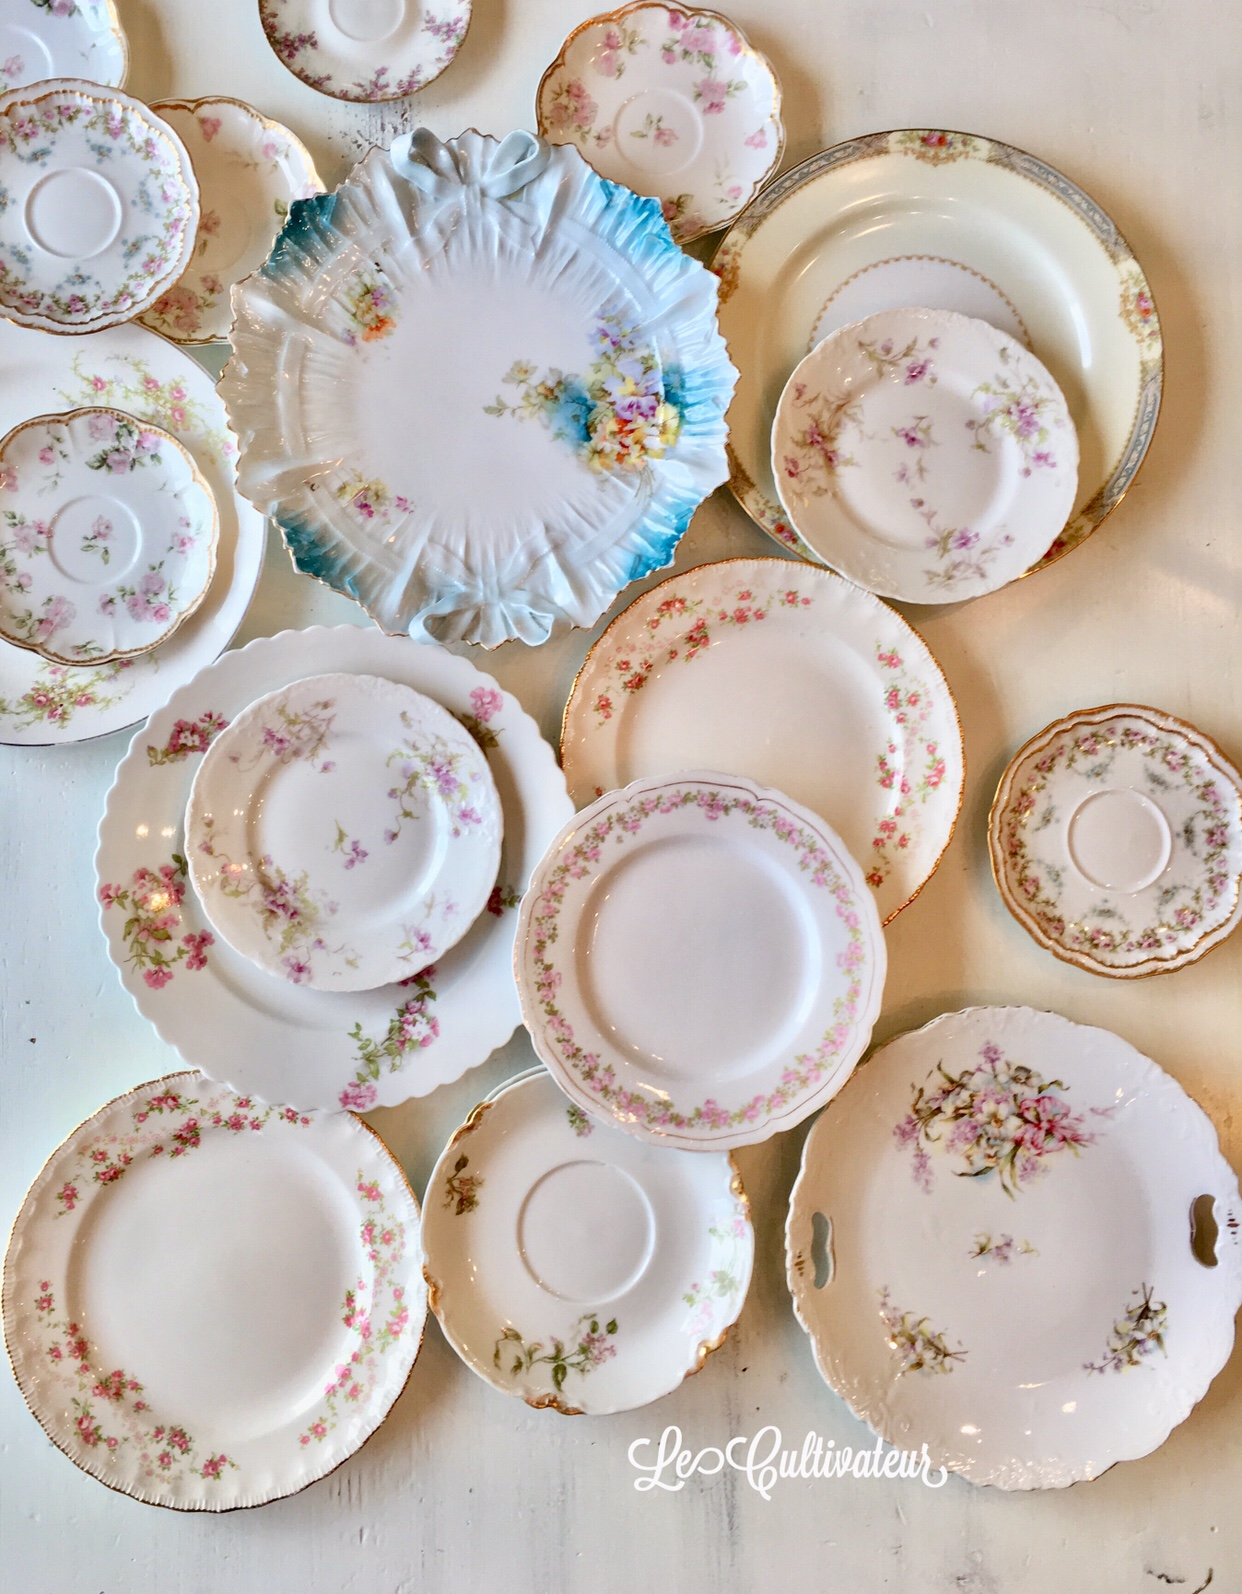 Decorating with plates   plate walls made easy   LeCultivateur I love sifting through the endless stacks of plates at antique shops   trying to find the prettiest ones to take home  Can you really ever have  too many